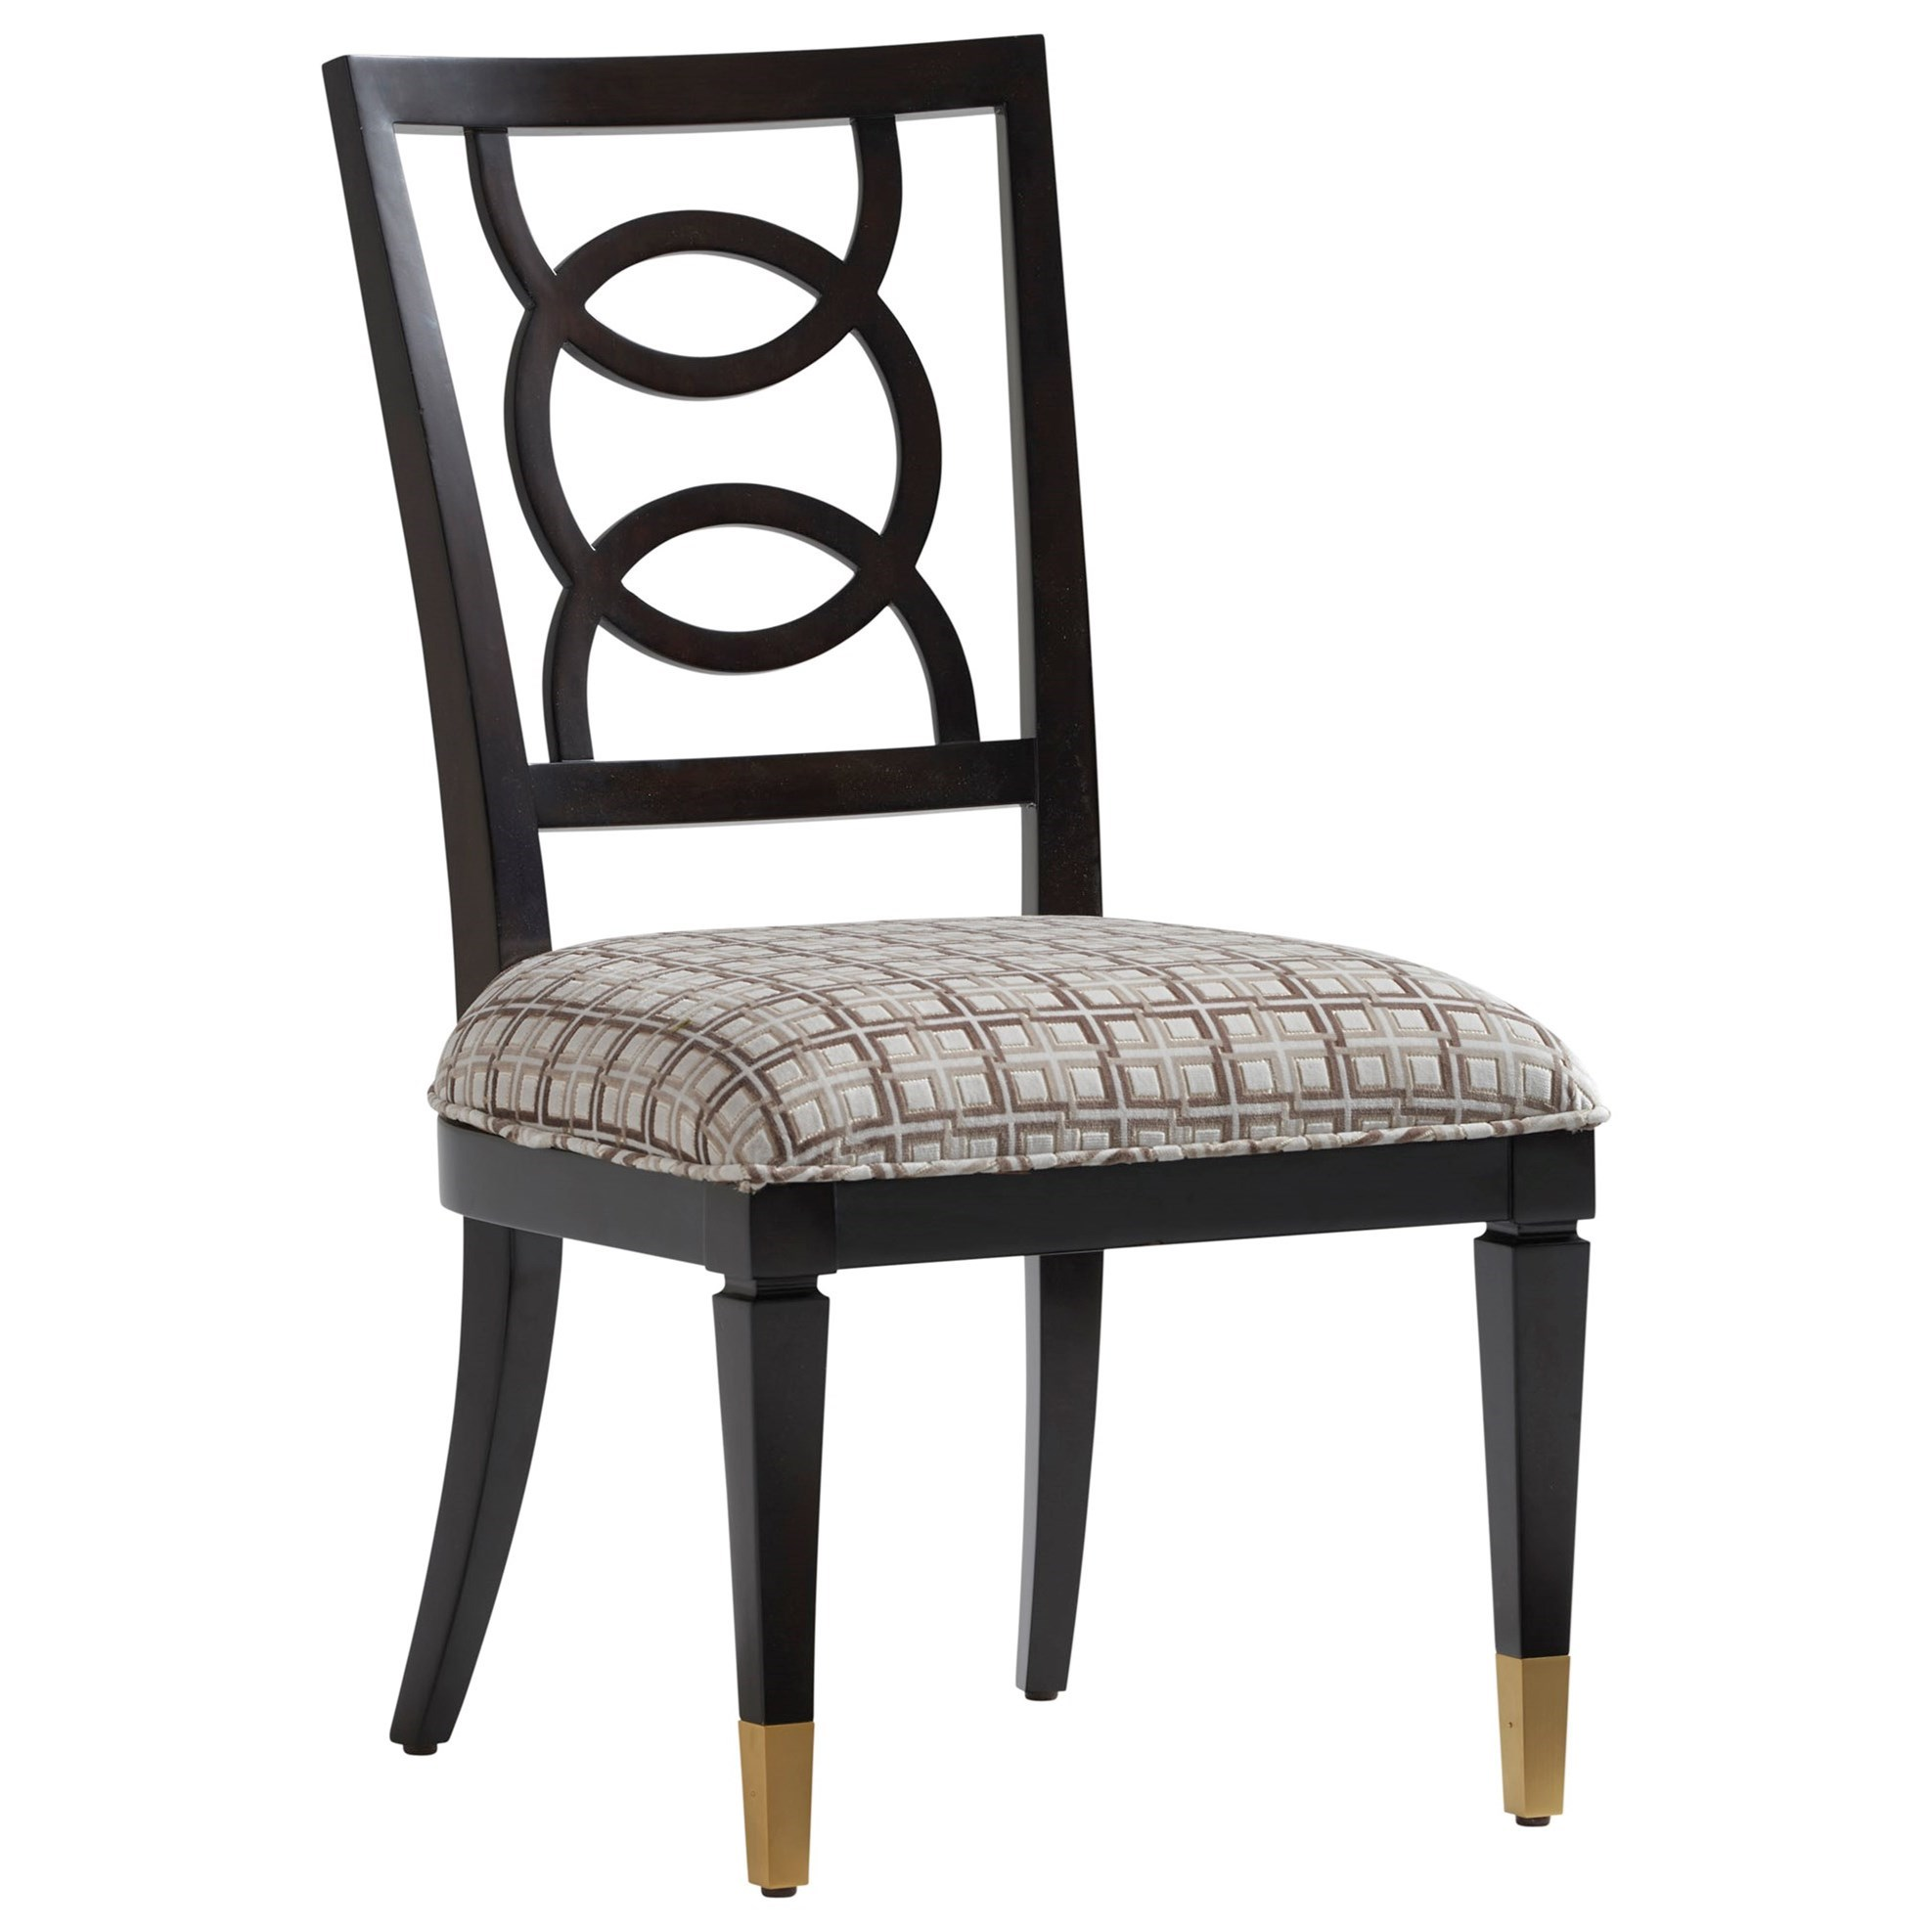 Carlyle Pierce Upholstered Side Chair - Custom by Lexington at Baer's Furniture